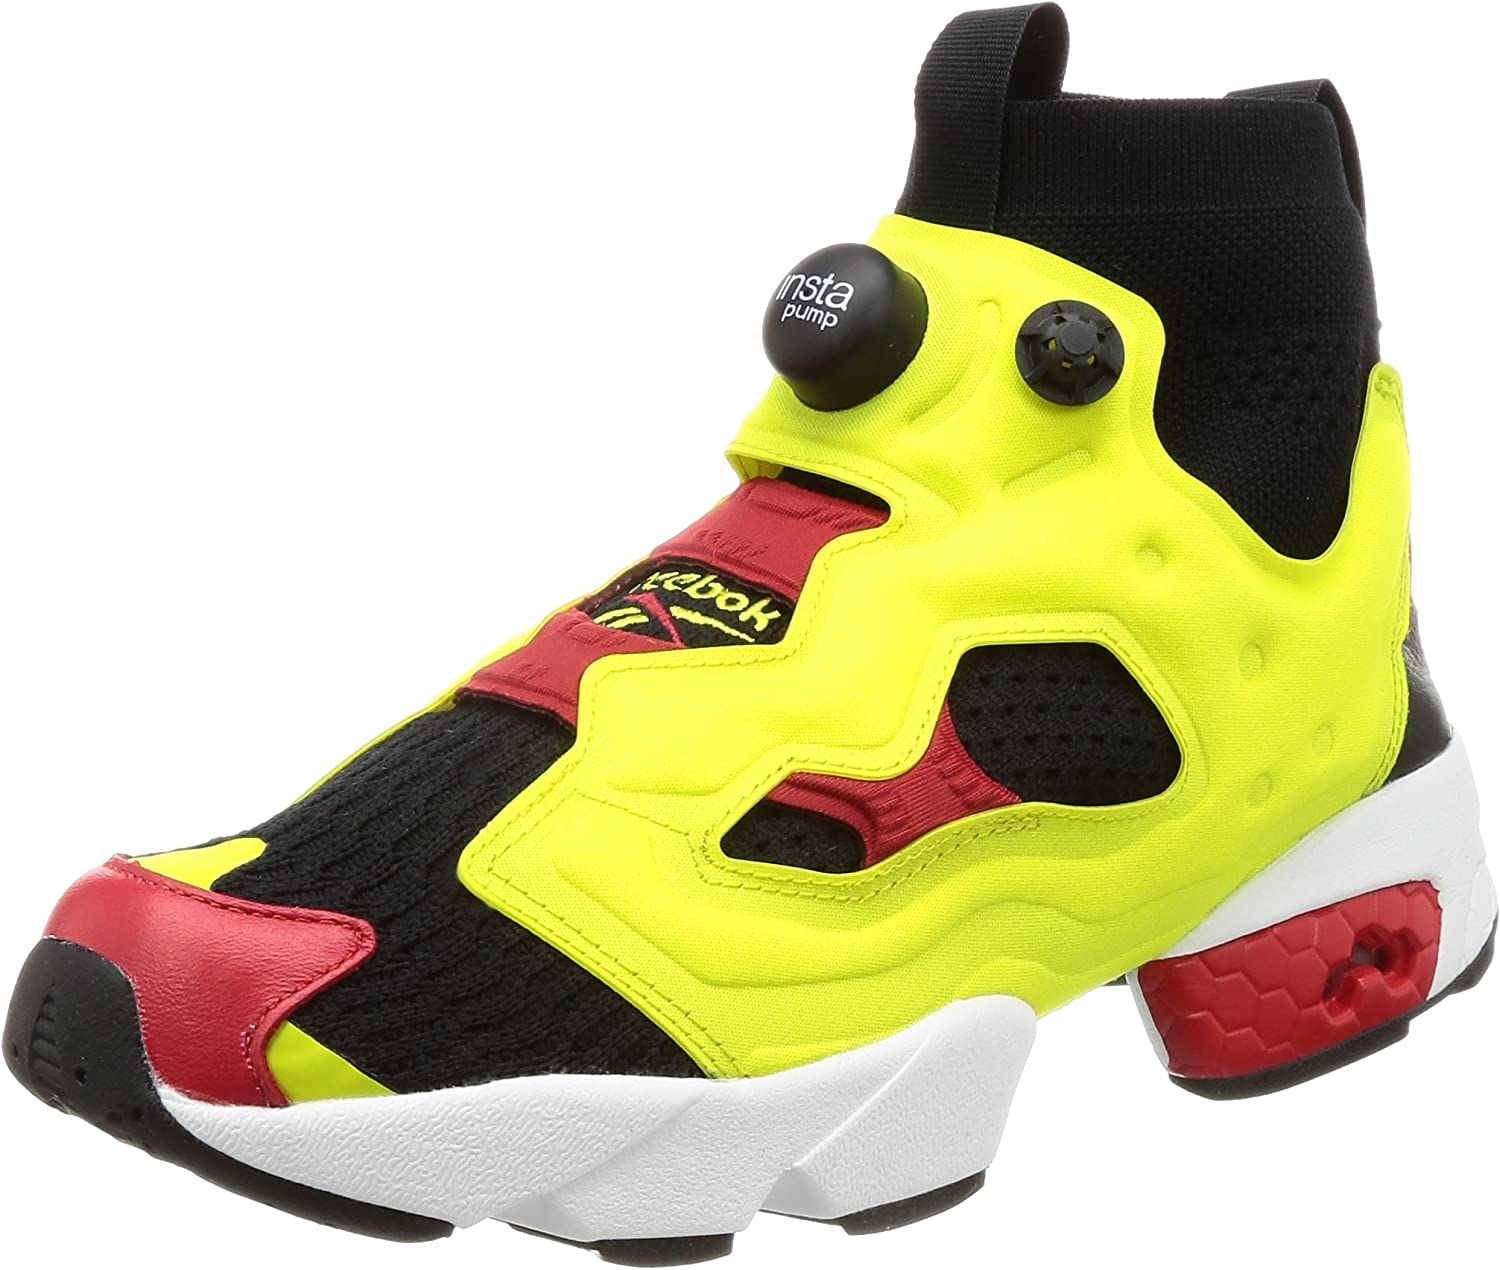 Reebok Pump Instapump Fury Og Ultk Mens Running Trainers Sneakers